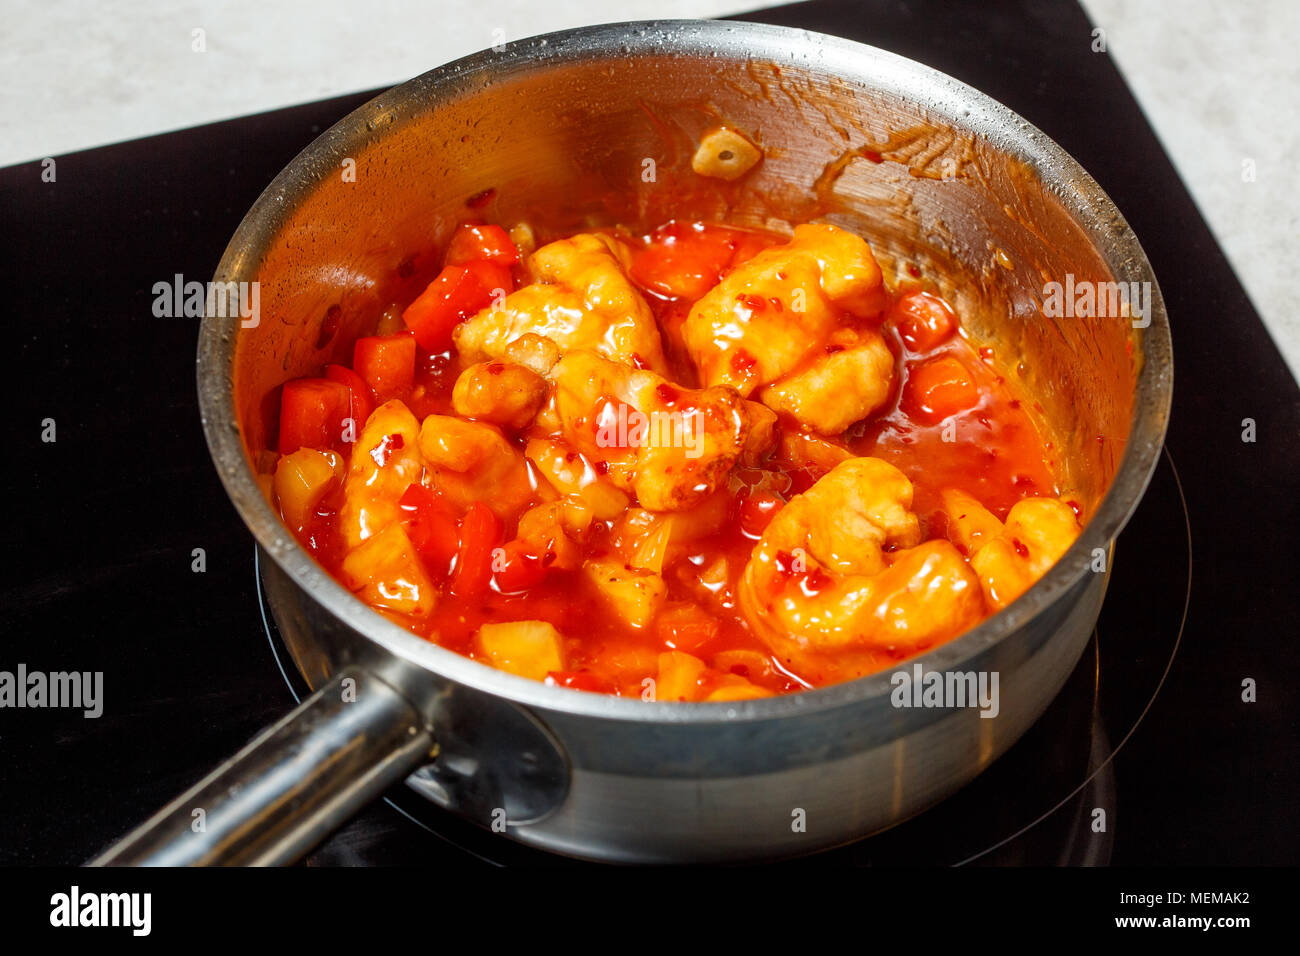 Cooking process of chinese sweet and sour fried chicken food, close up - Stock Image